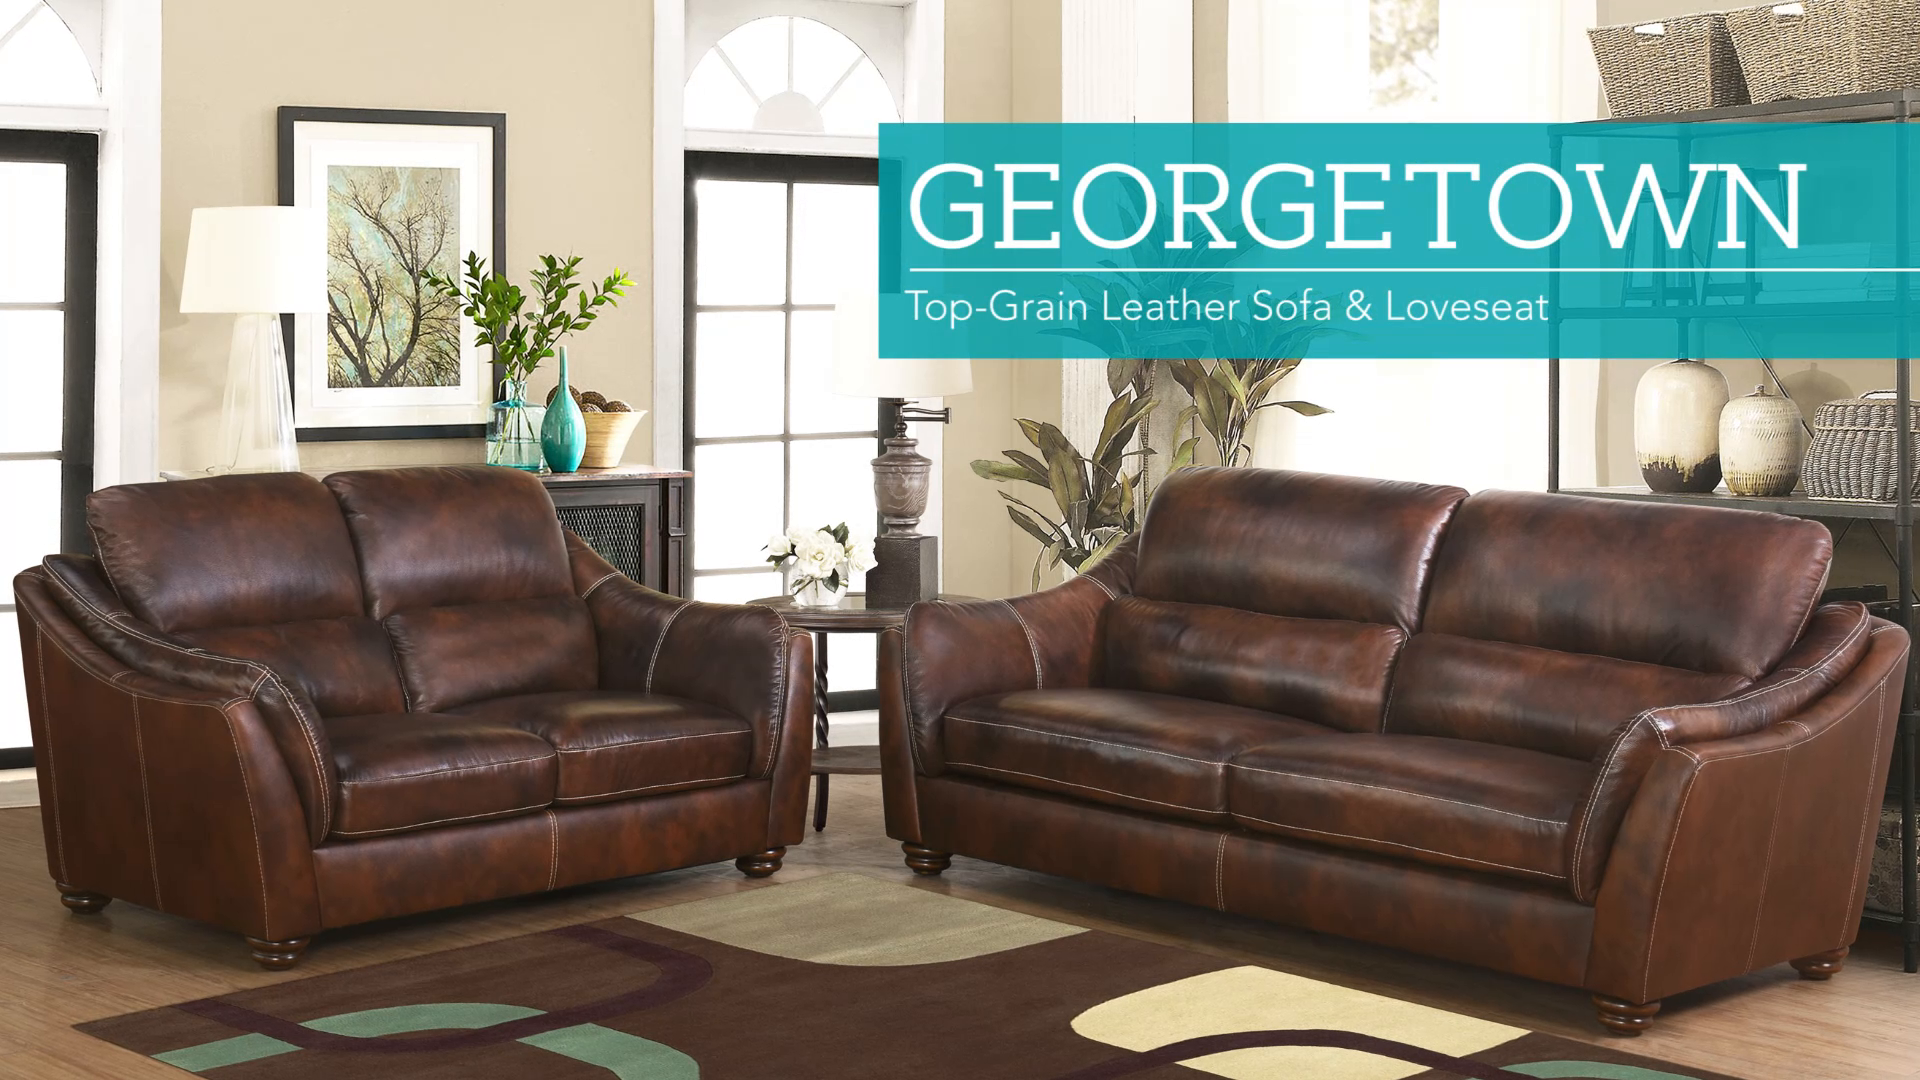 Geor own 2 piece Top Grain Leather Set Sofa and Loveseat